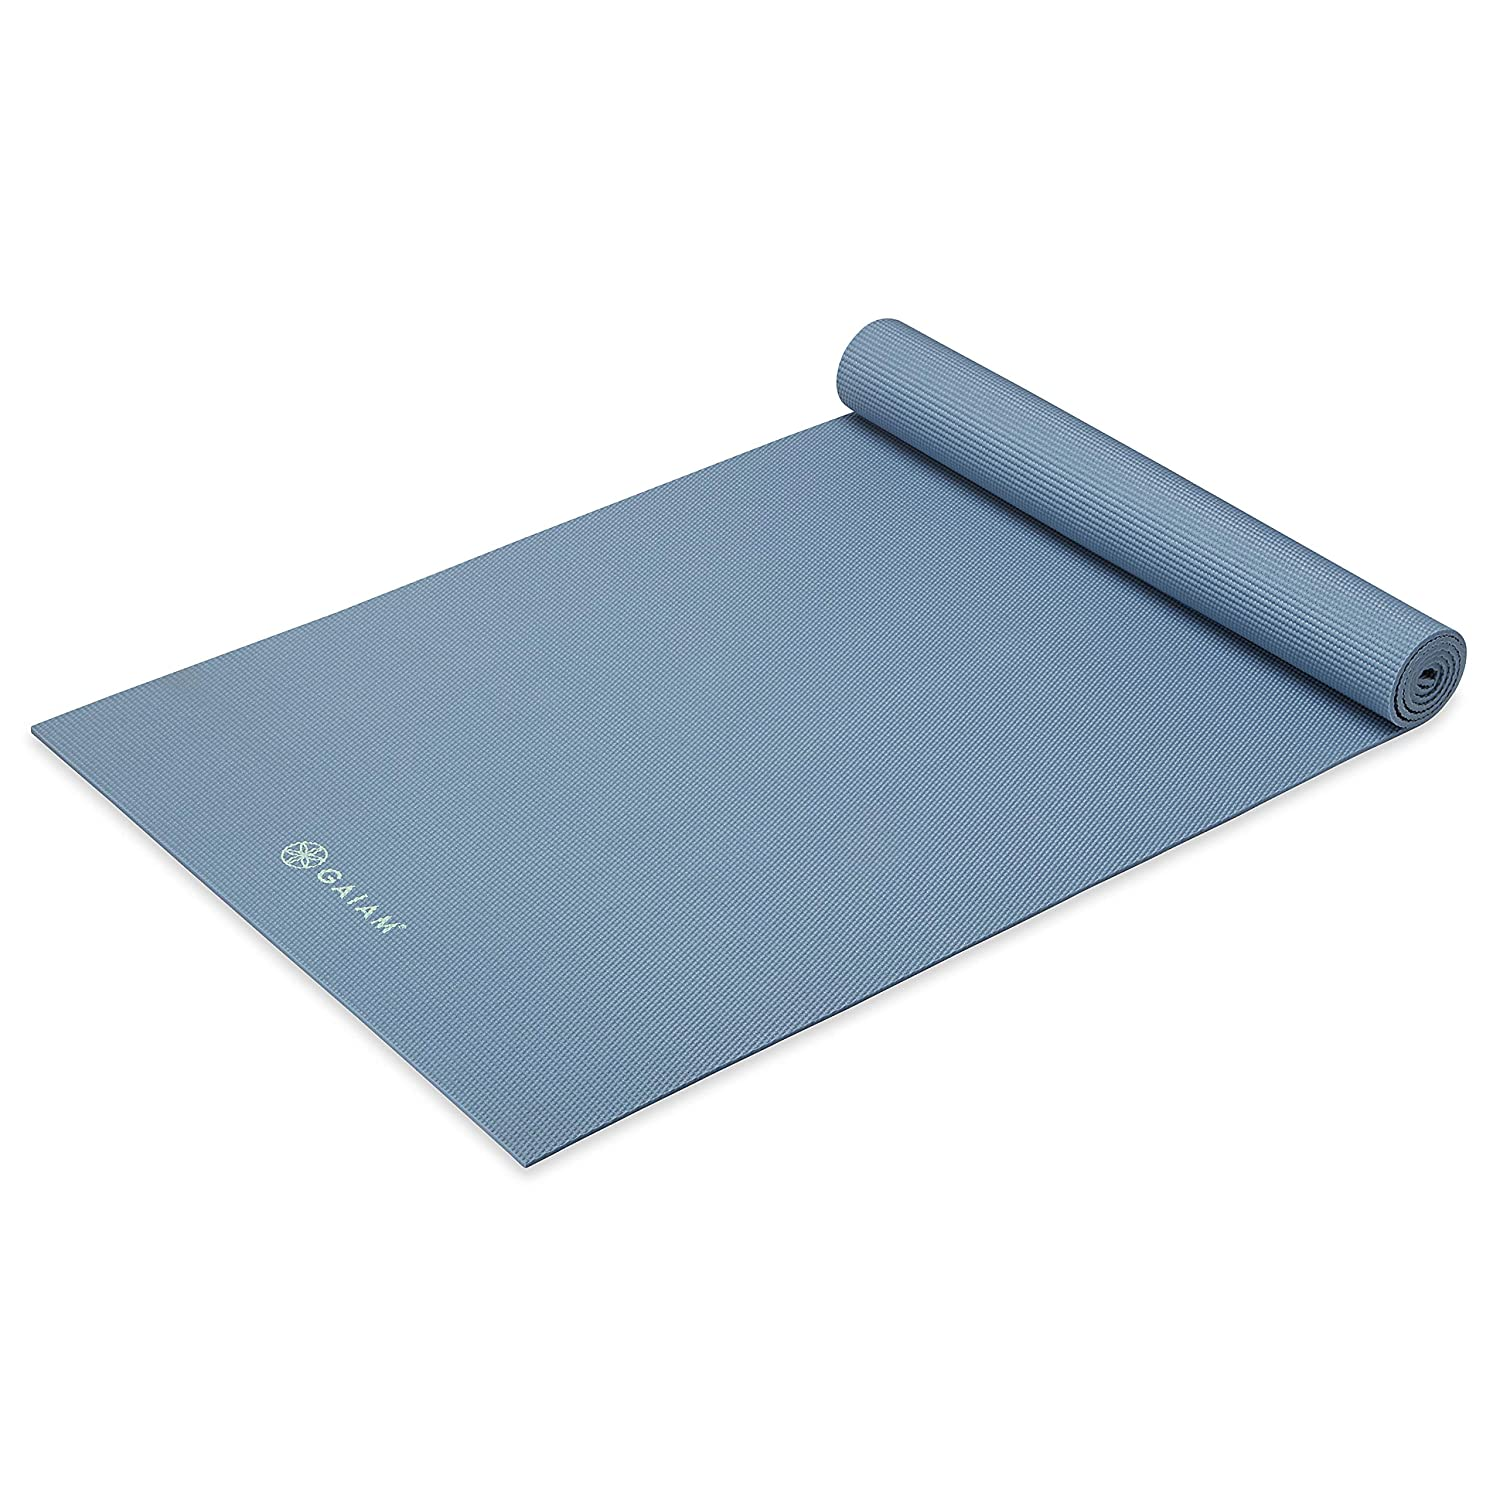 Gaiam Yoga Mat – Premium 5mm Thick Exercise Fitness Mat for All Types of Yoga, Pilates Floor Exercises 68 x 24 x 5mm